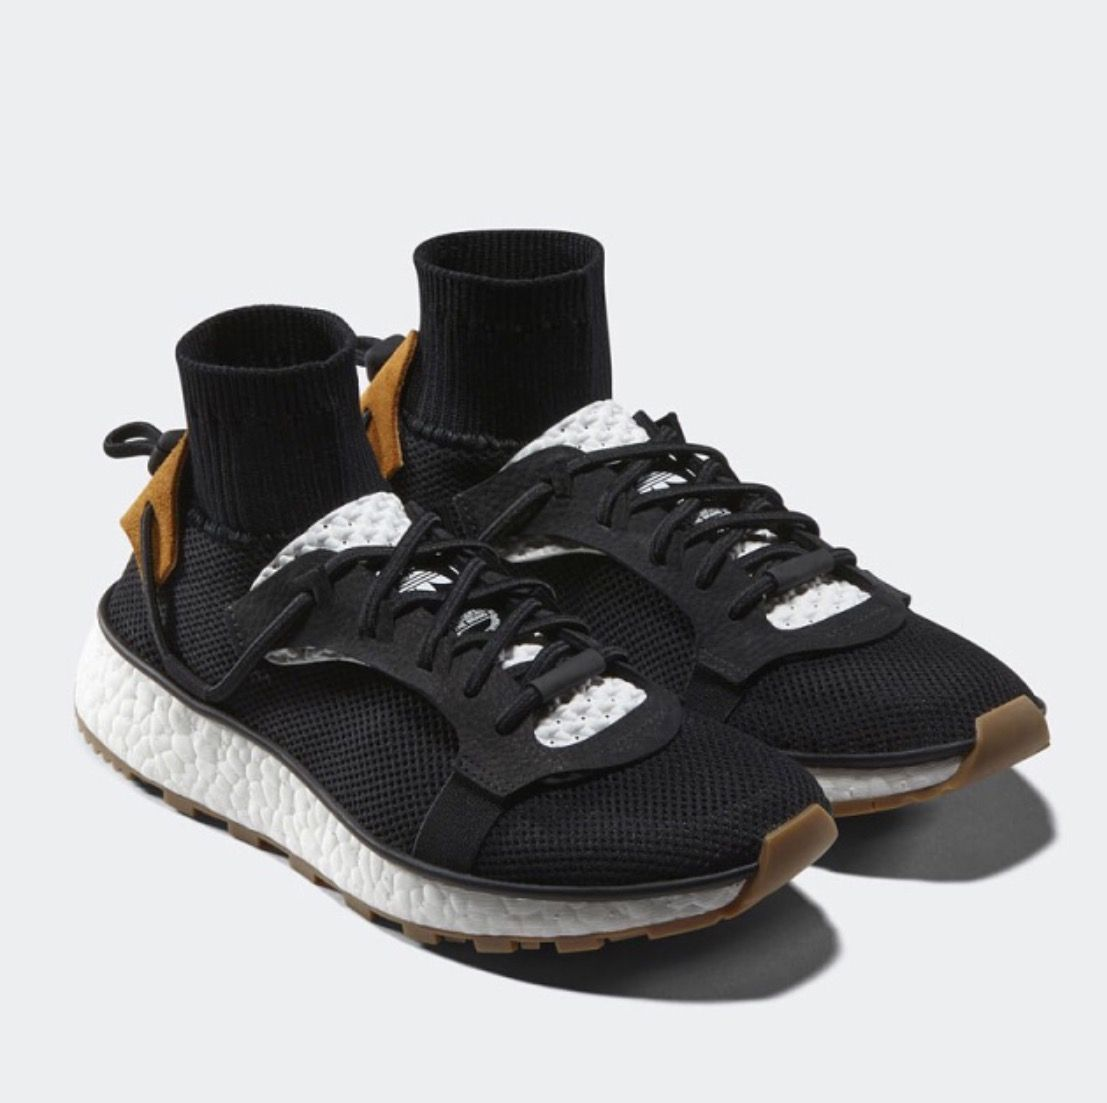 Wang Alexander Shoes Sportive Adidas X qf11xRgY